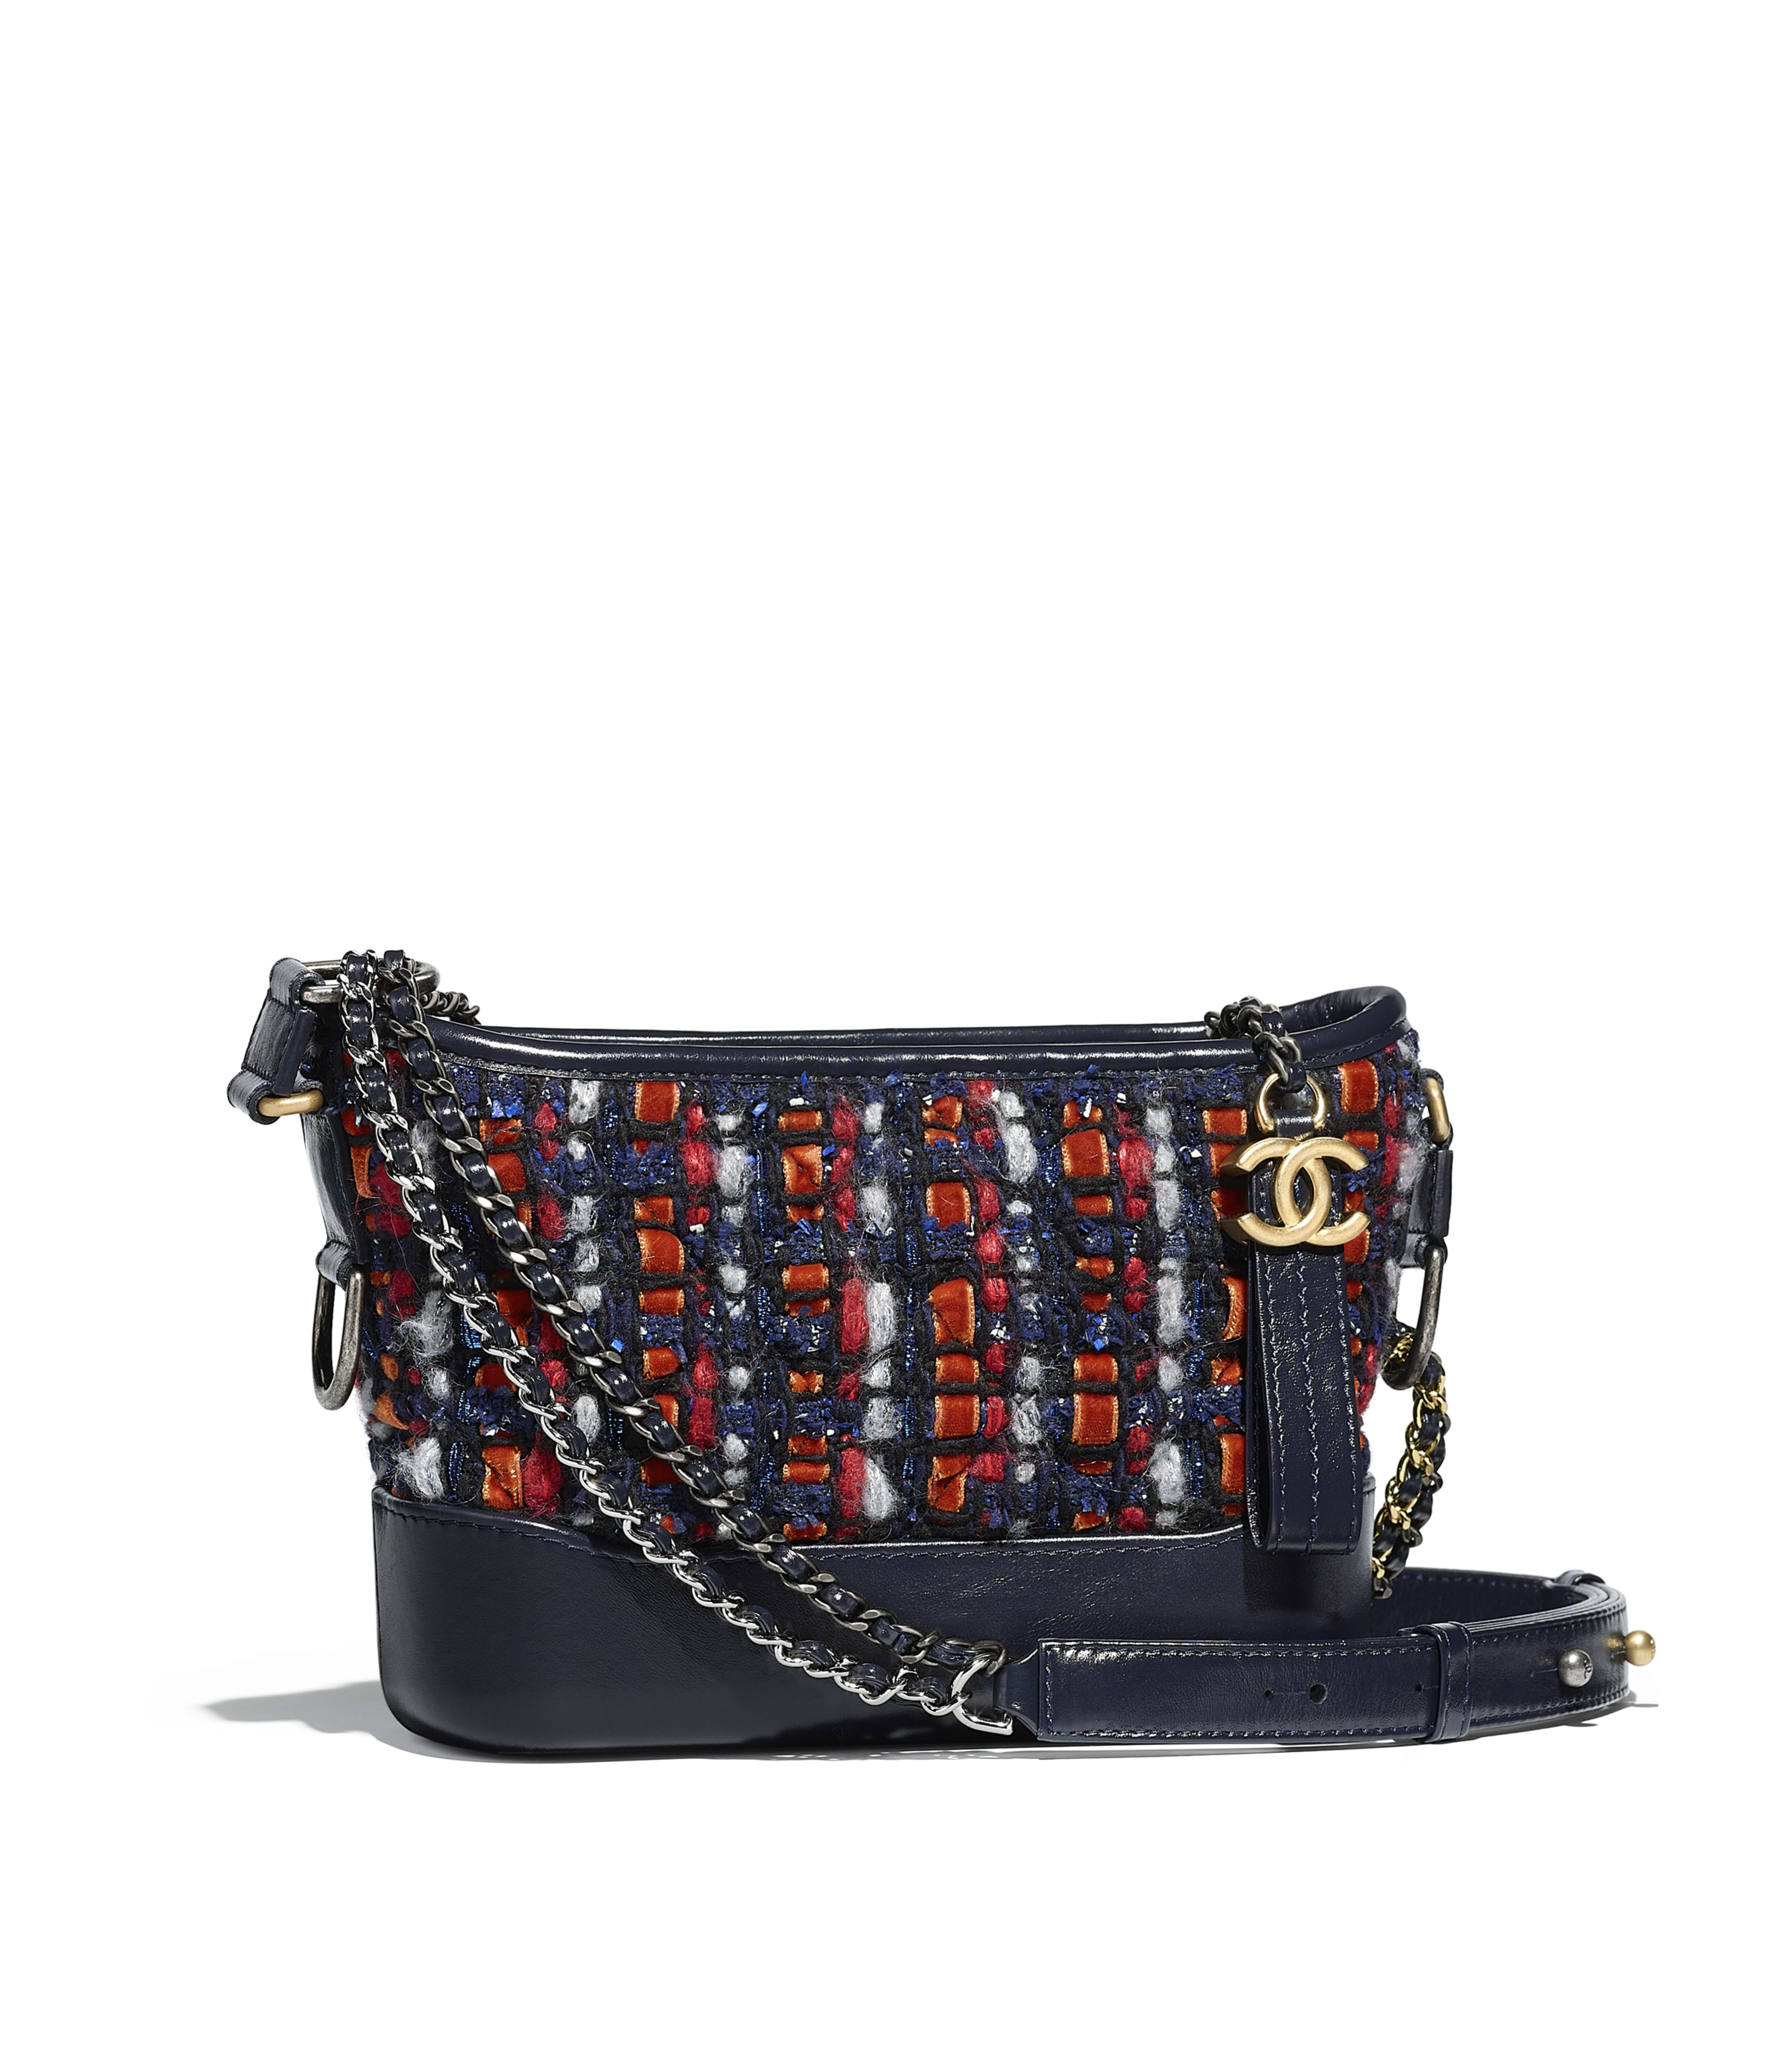 Chanel S Gabrielle Small Hobo Bag Tweed Calfskin Silver Tone Gold Metal Navy Blue Orange Red White Ref A91810y83700k0915